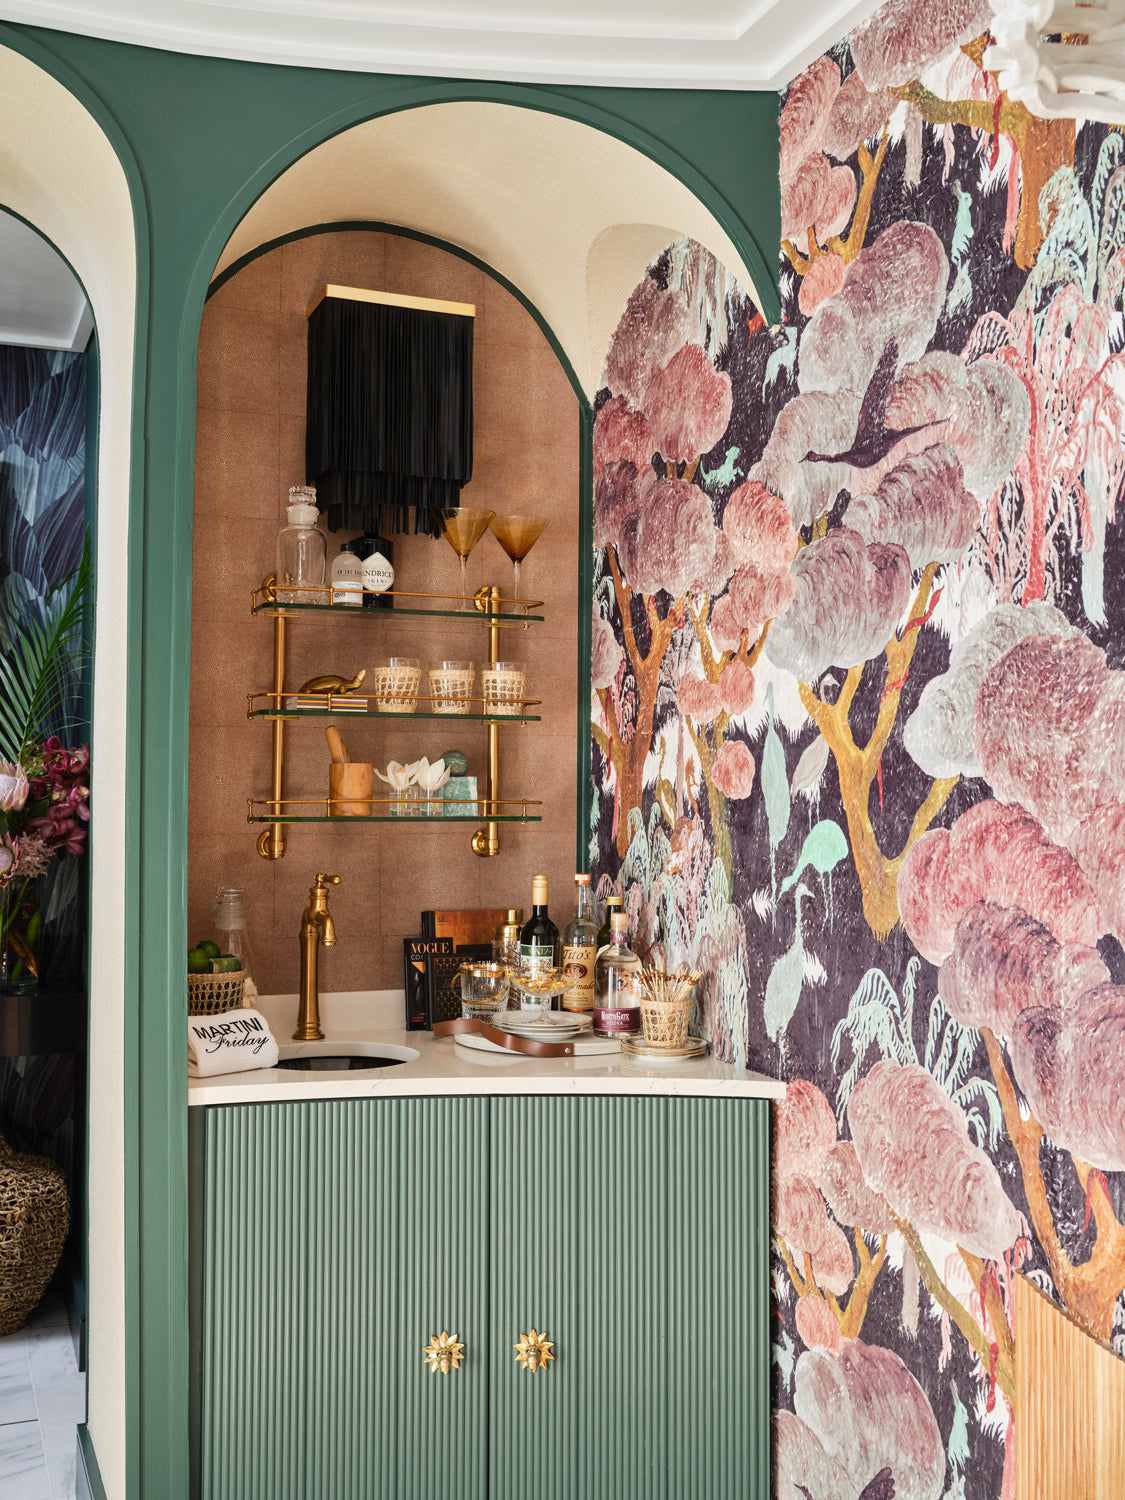 Indoor Pool Bar Design with Patterned Wallpaper, Green Cabinets & Brass Hardware